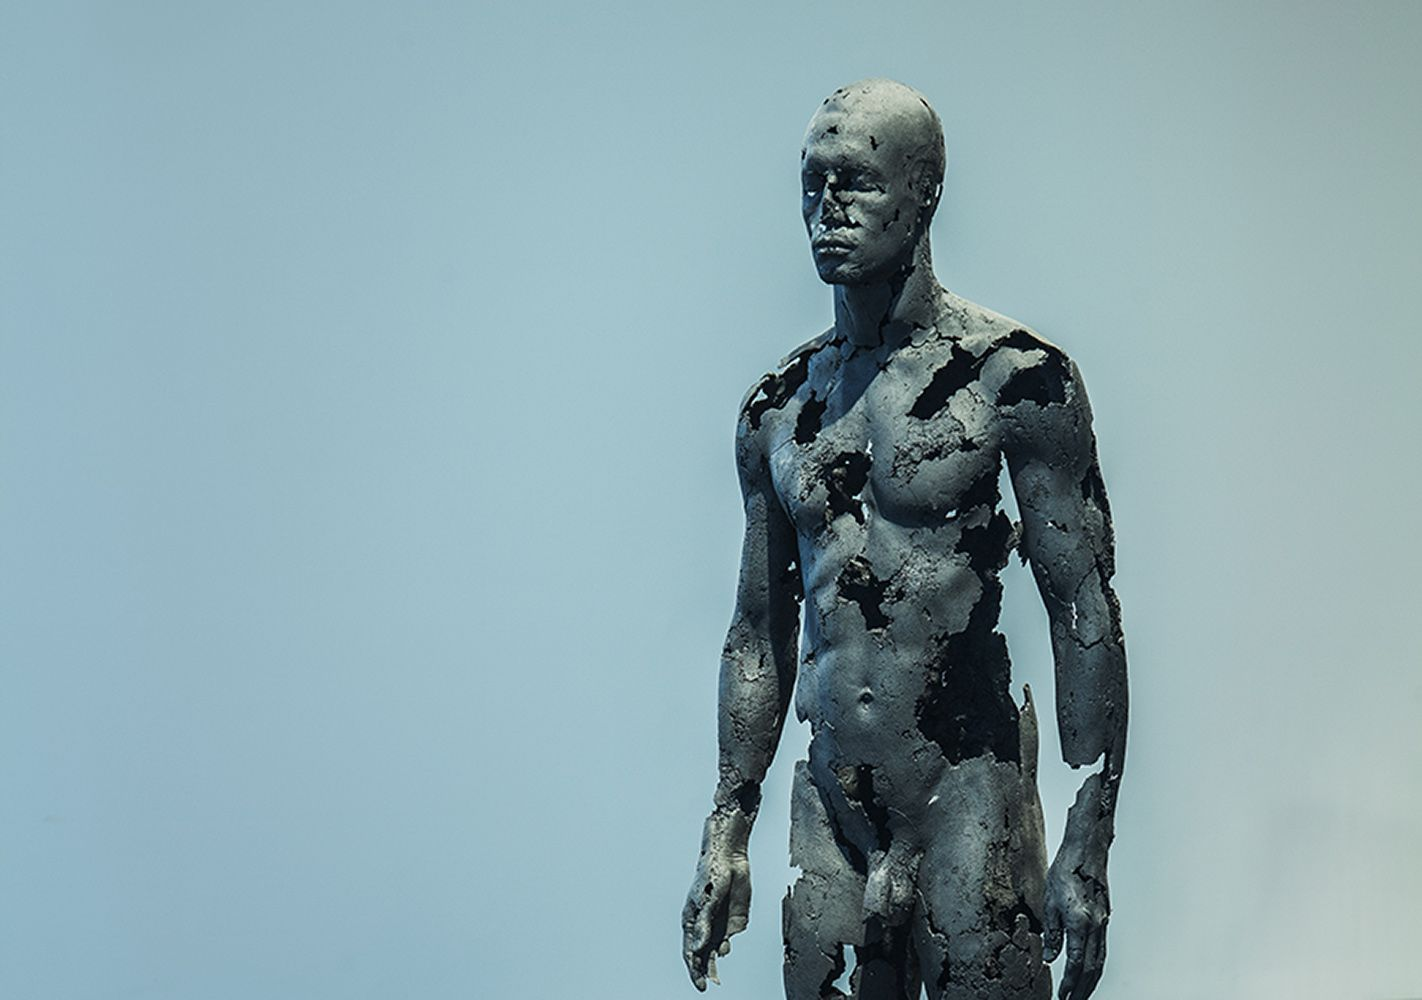 The Presence of Absence - Male (III),Tom Price, detail 2